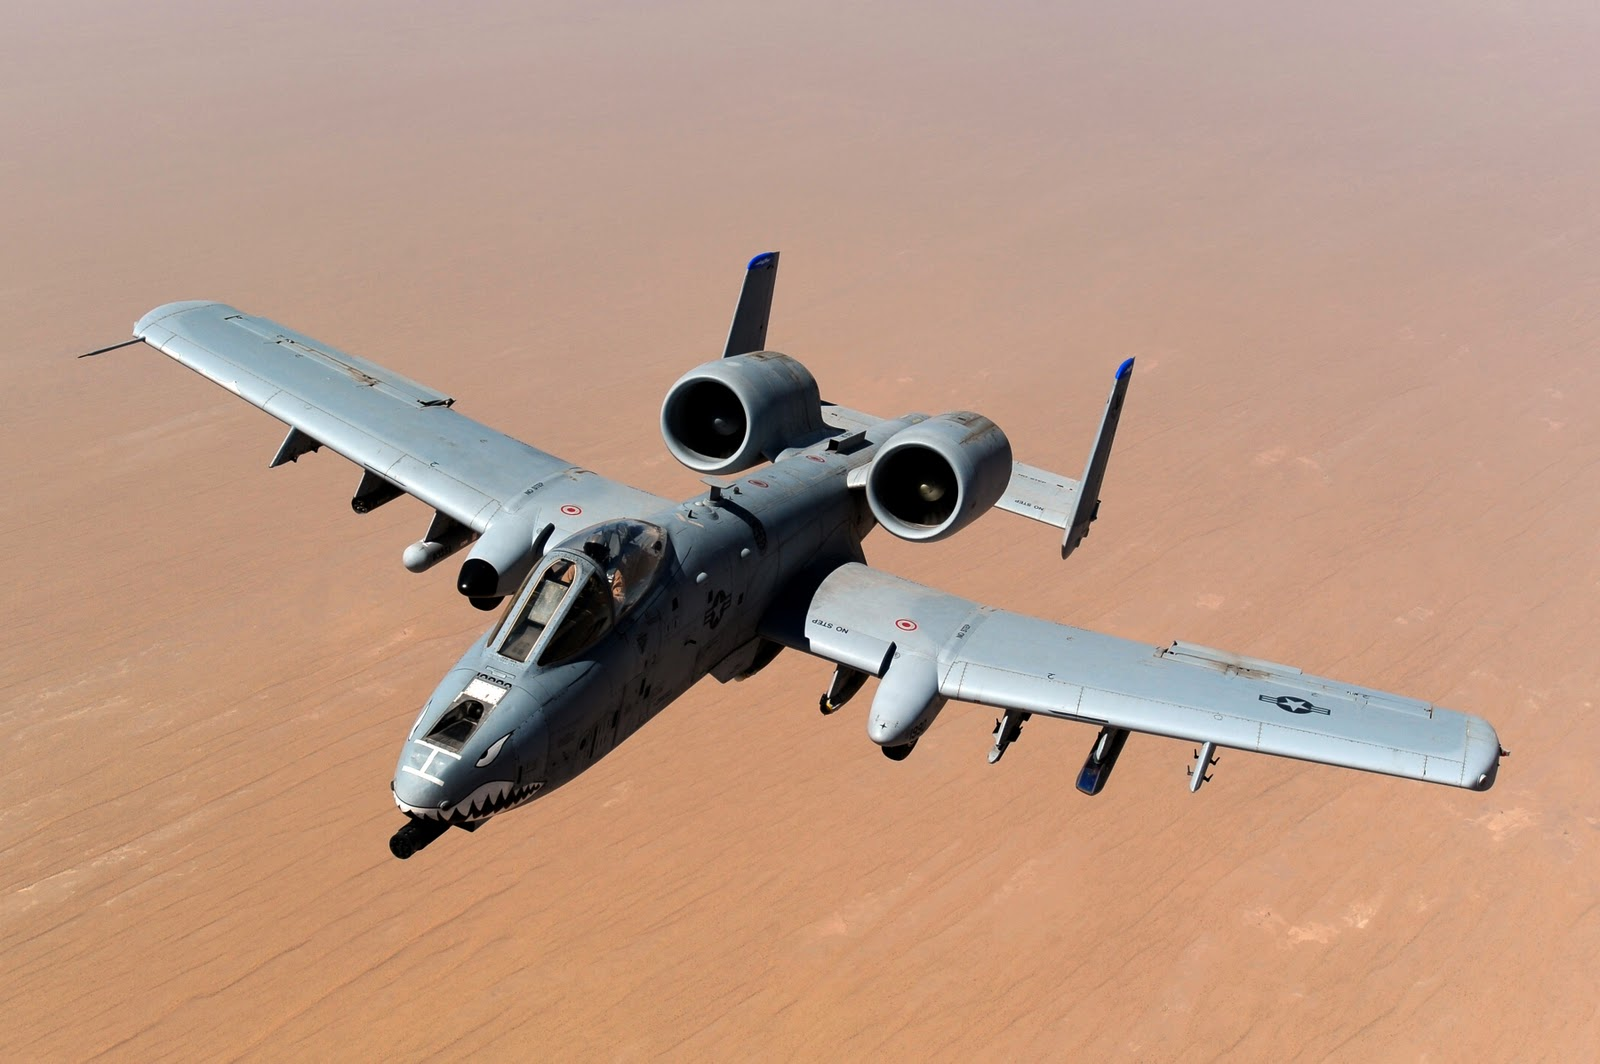 A10 Warthog from US Air Force Mid east Warfare Aircraft Wallpaper 2202 1600x1064